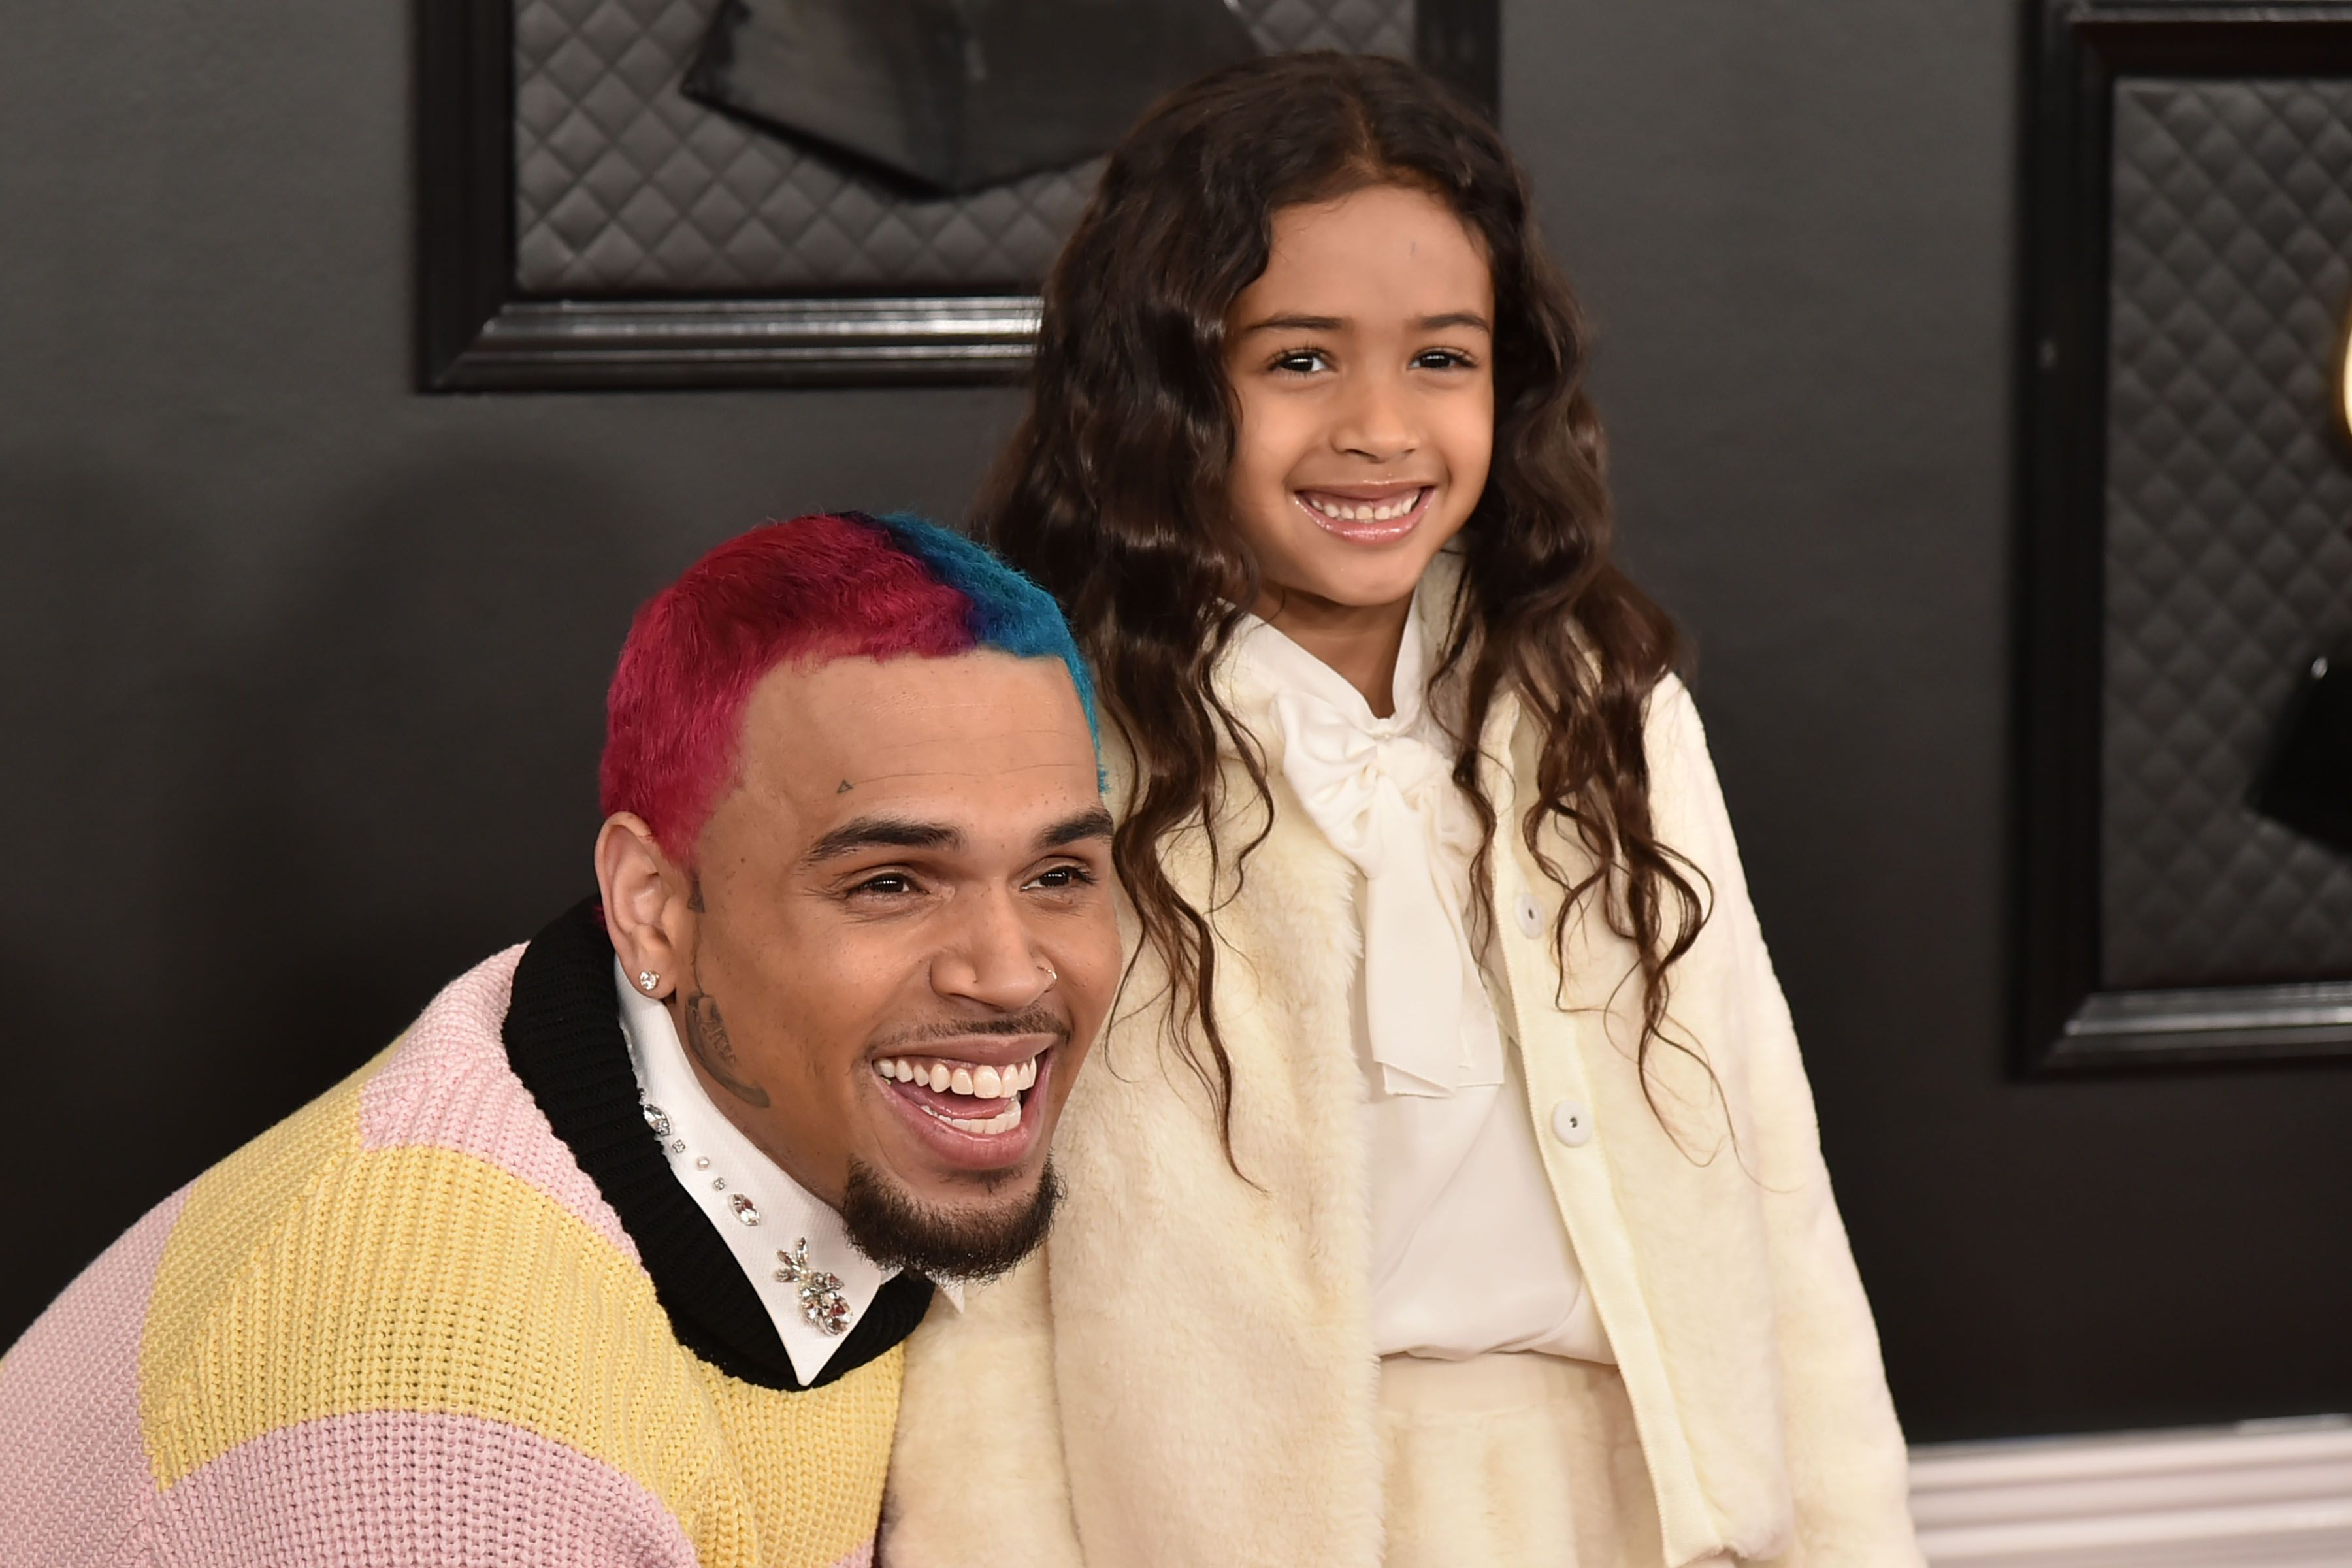 Chris Brown and Royalty Brown during the 62nd Annual Grammy Awards at Staples Center on January 26, 2020 in Los Angeles, CA. | Source: Getty Images